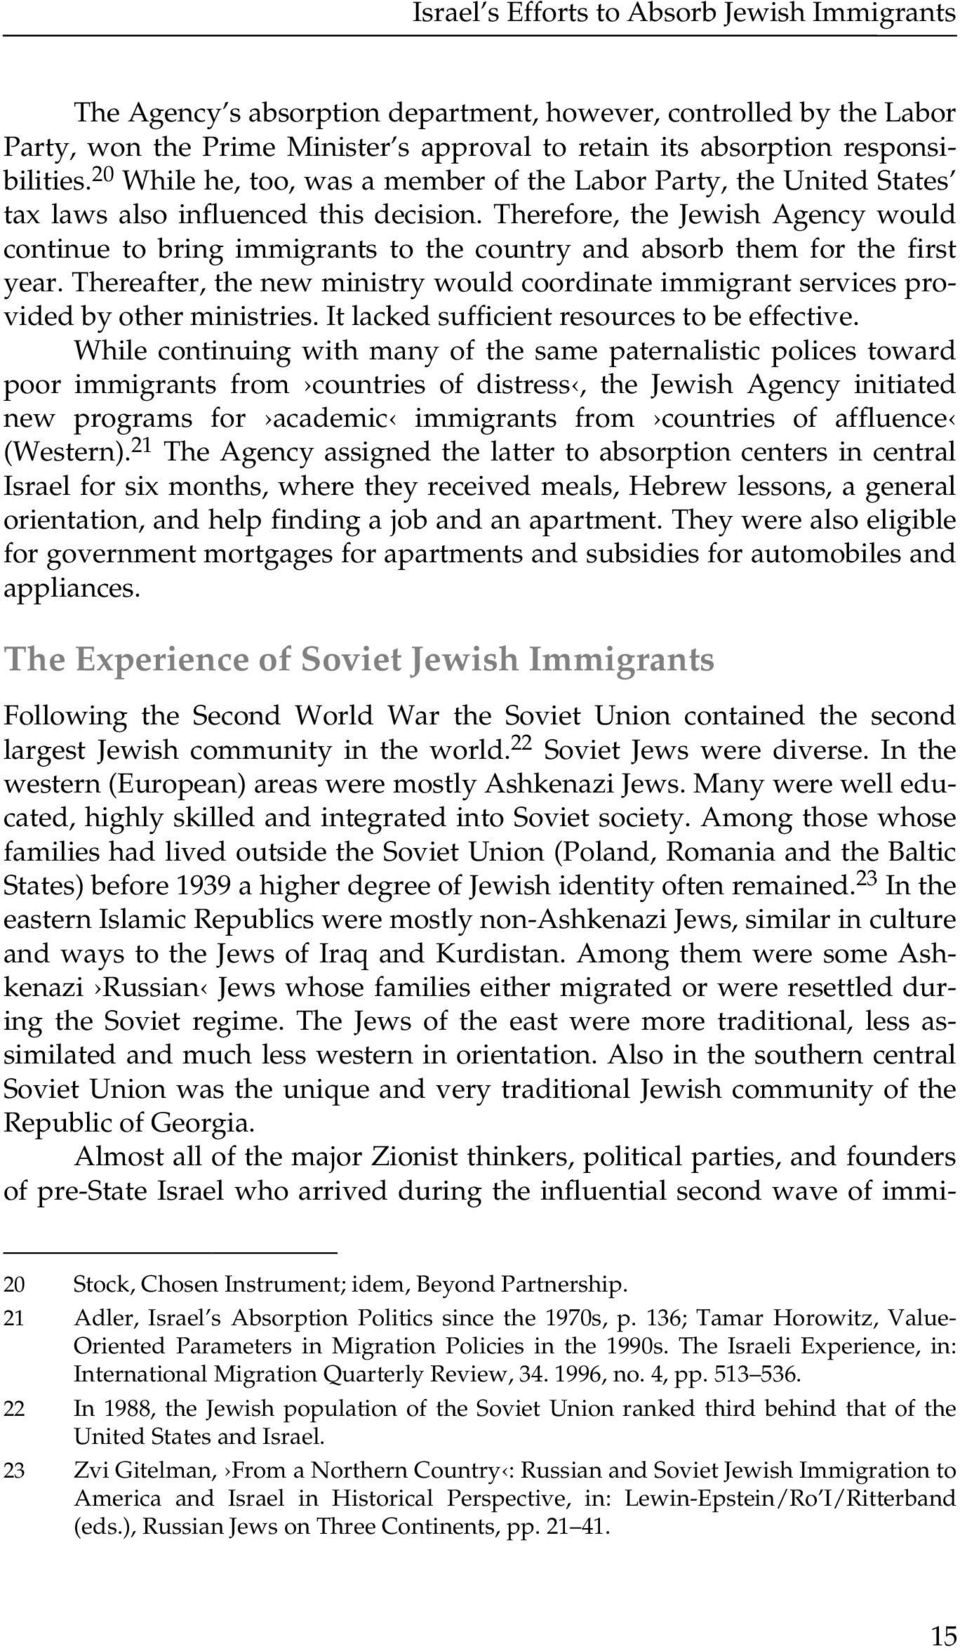 Therefore, the Jewish Agency would continue to bring immigrants to the country and absorb them for the first year.